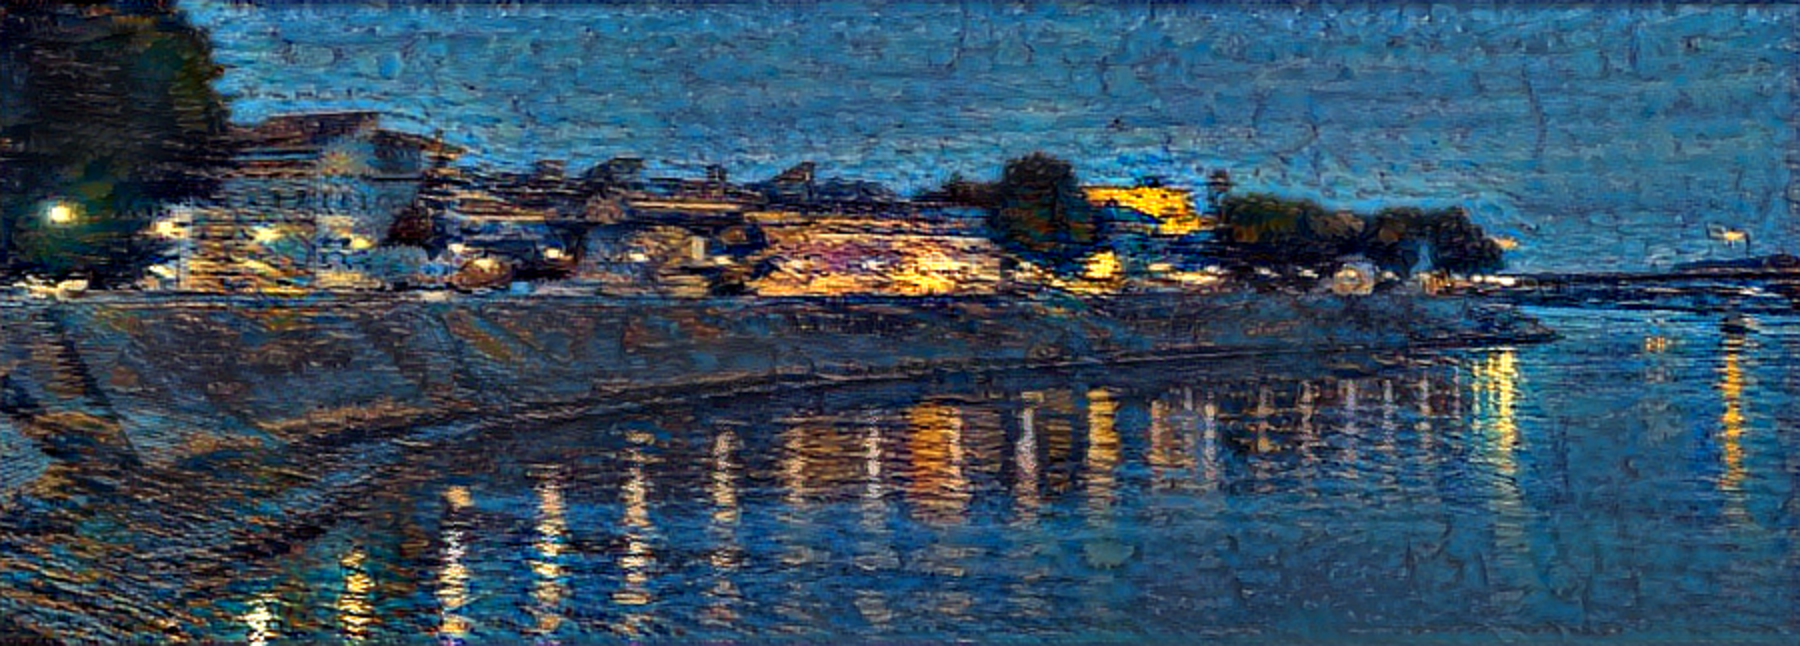 Result: Starry NIght Over Rhone, Neural Style Transfer